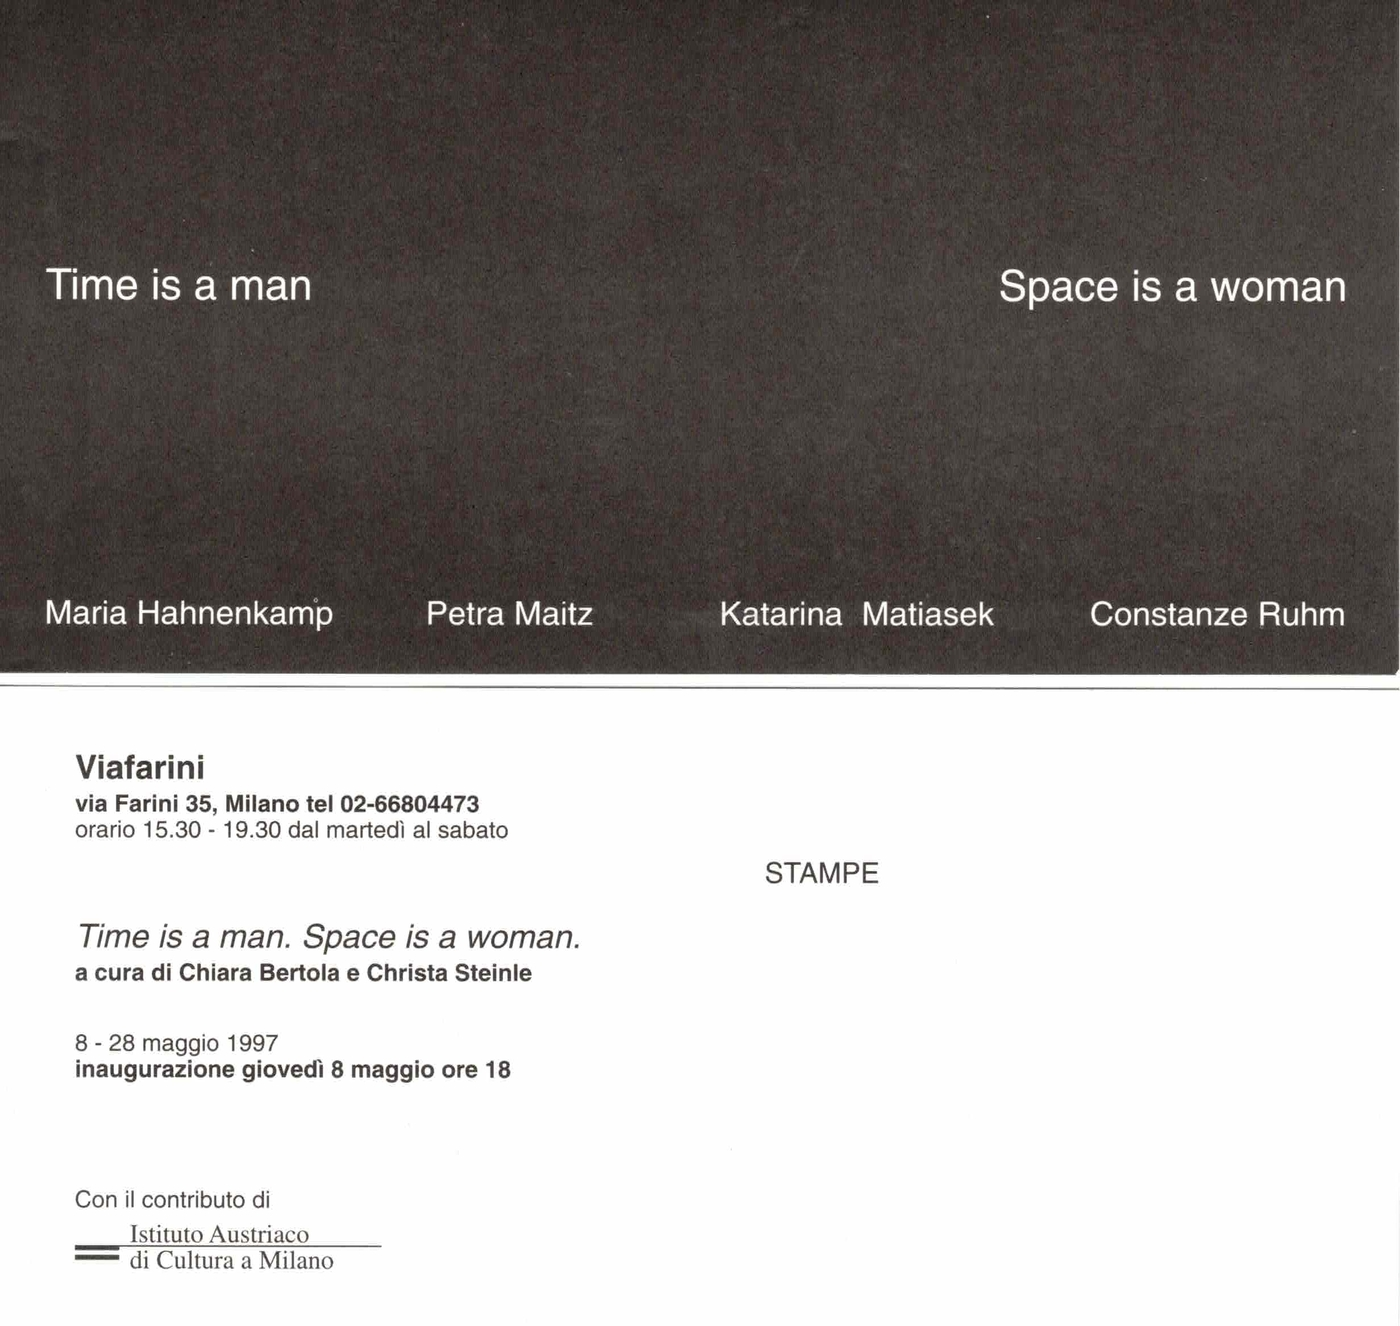 Time is a man. Space is a woman, L'invito